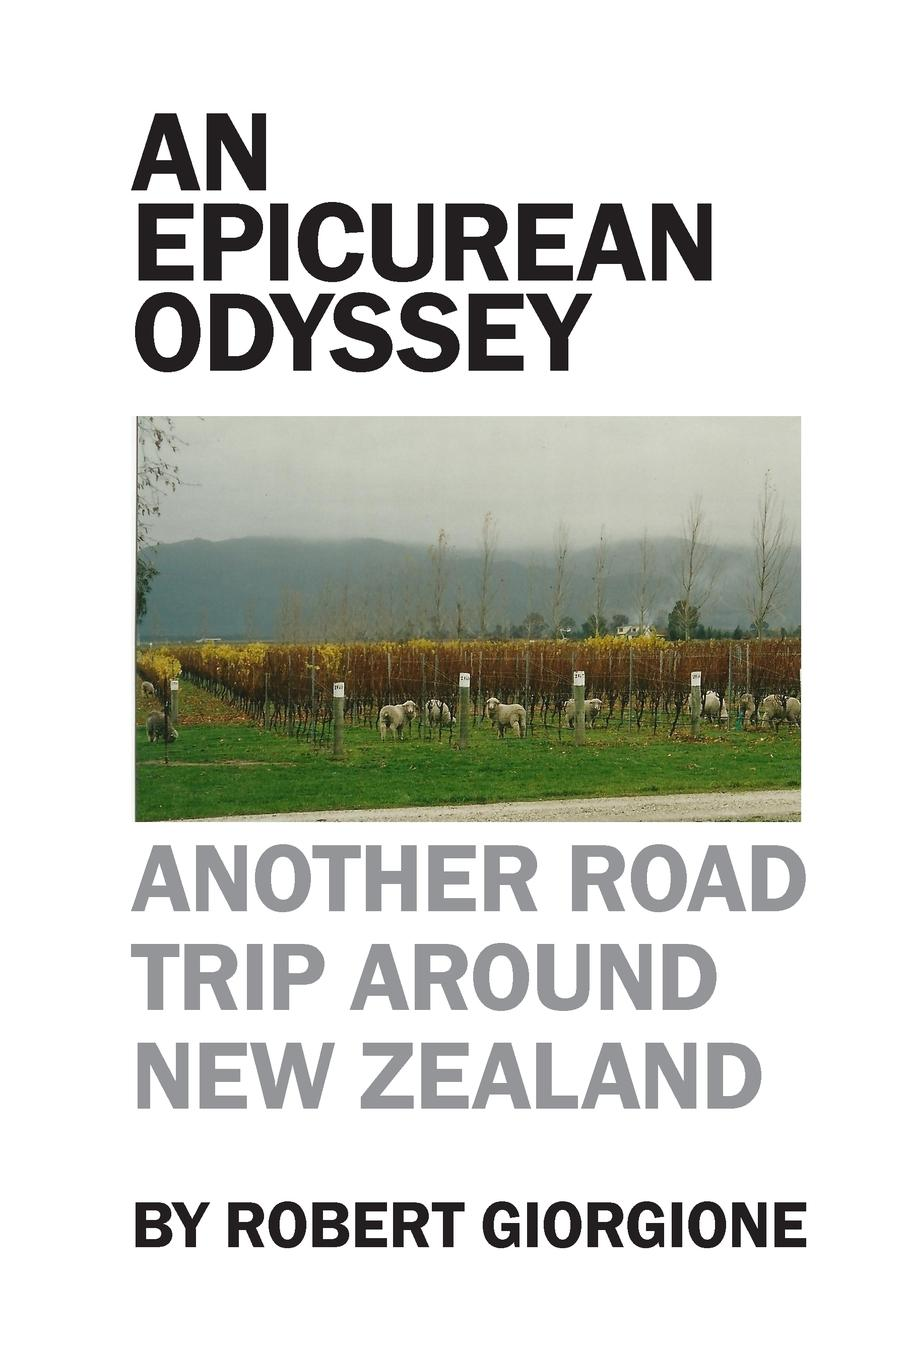 Robert Giorgione An Epicurean Odyssey. Another Road Trip Around New Zealand украшения simple fun набор для плетения браслетов simple fun loom светящиеся 200 шт